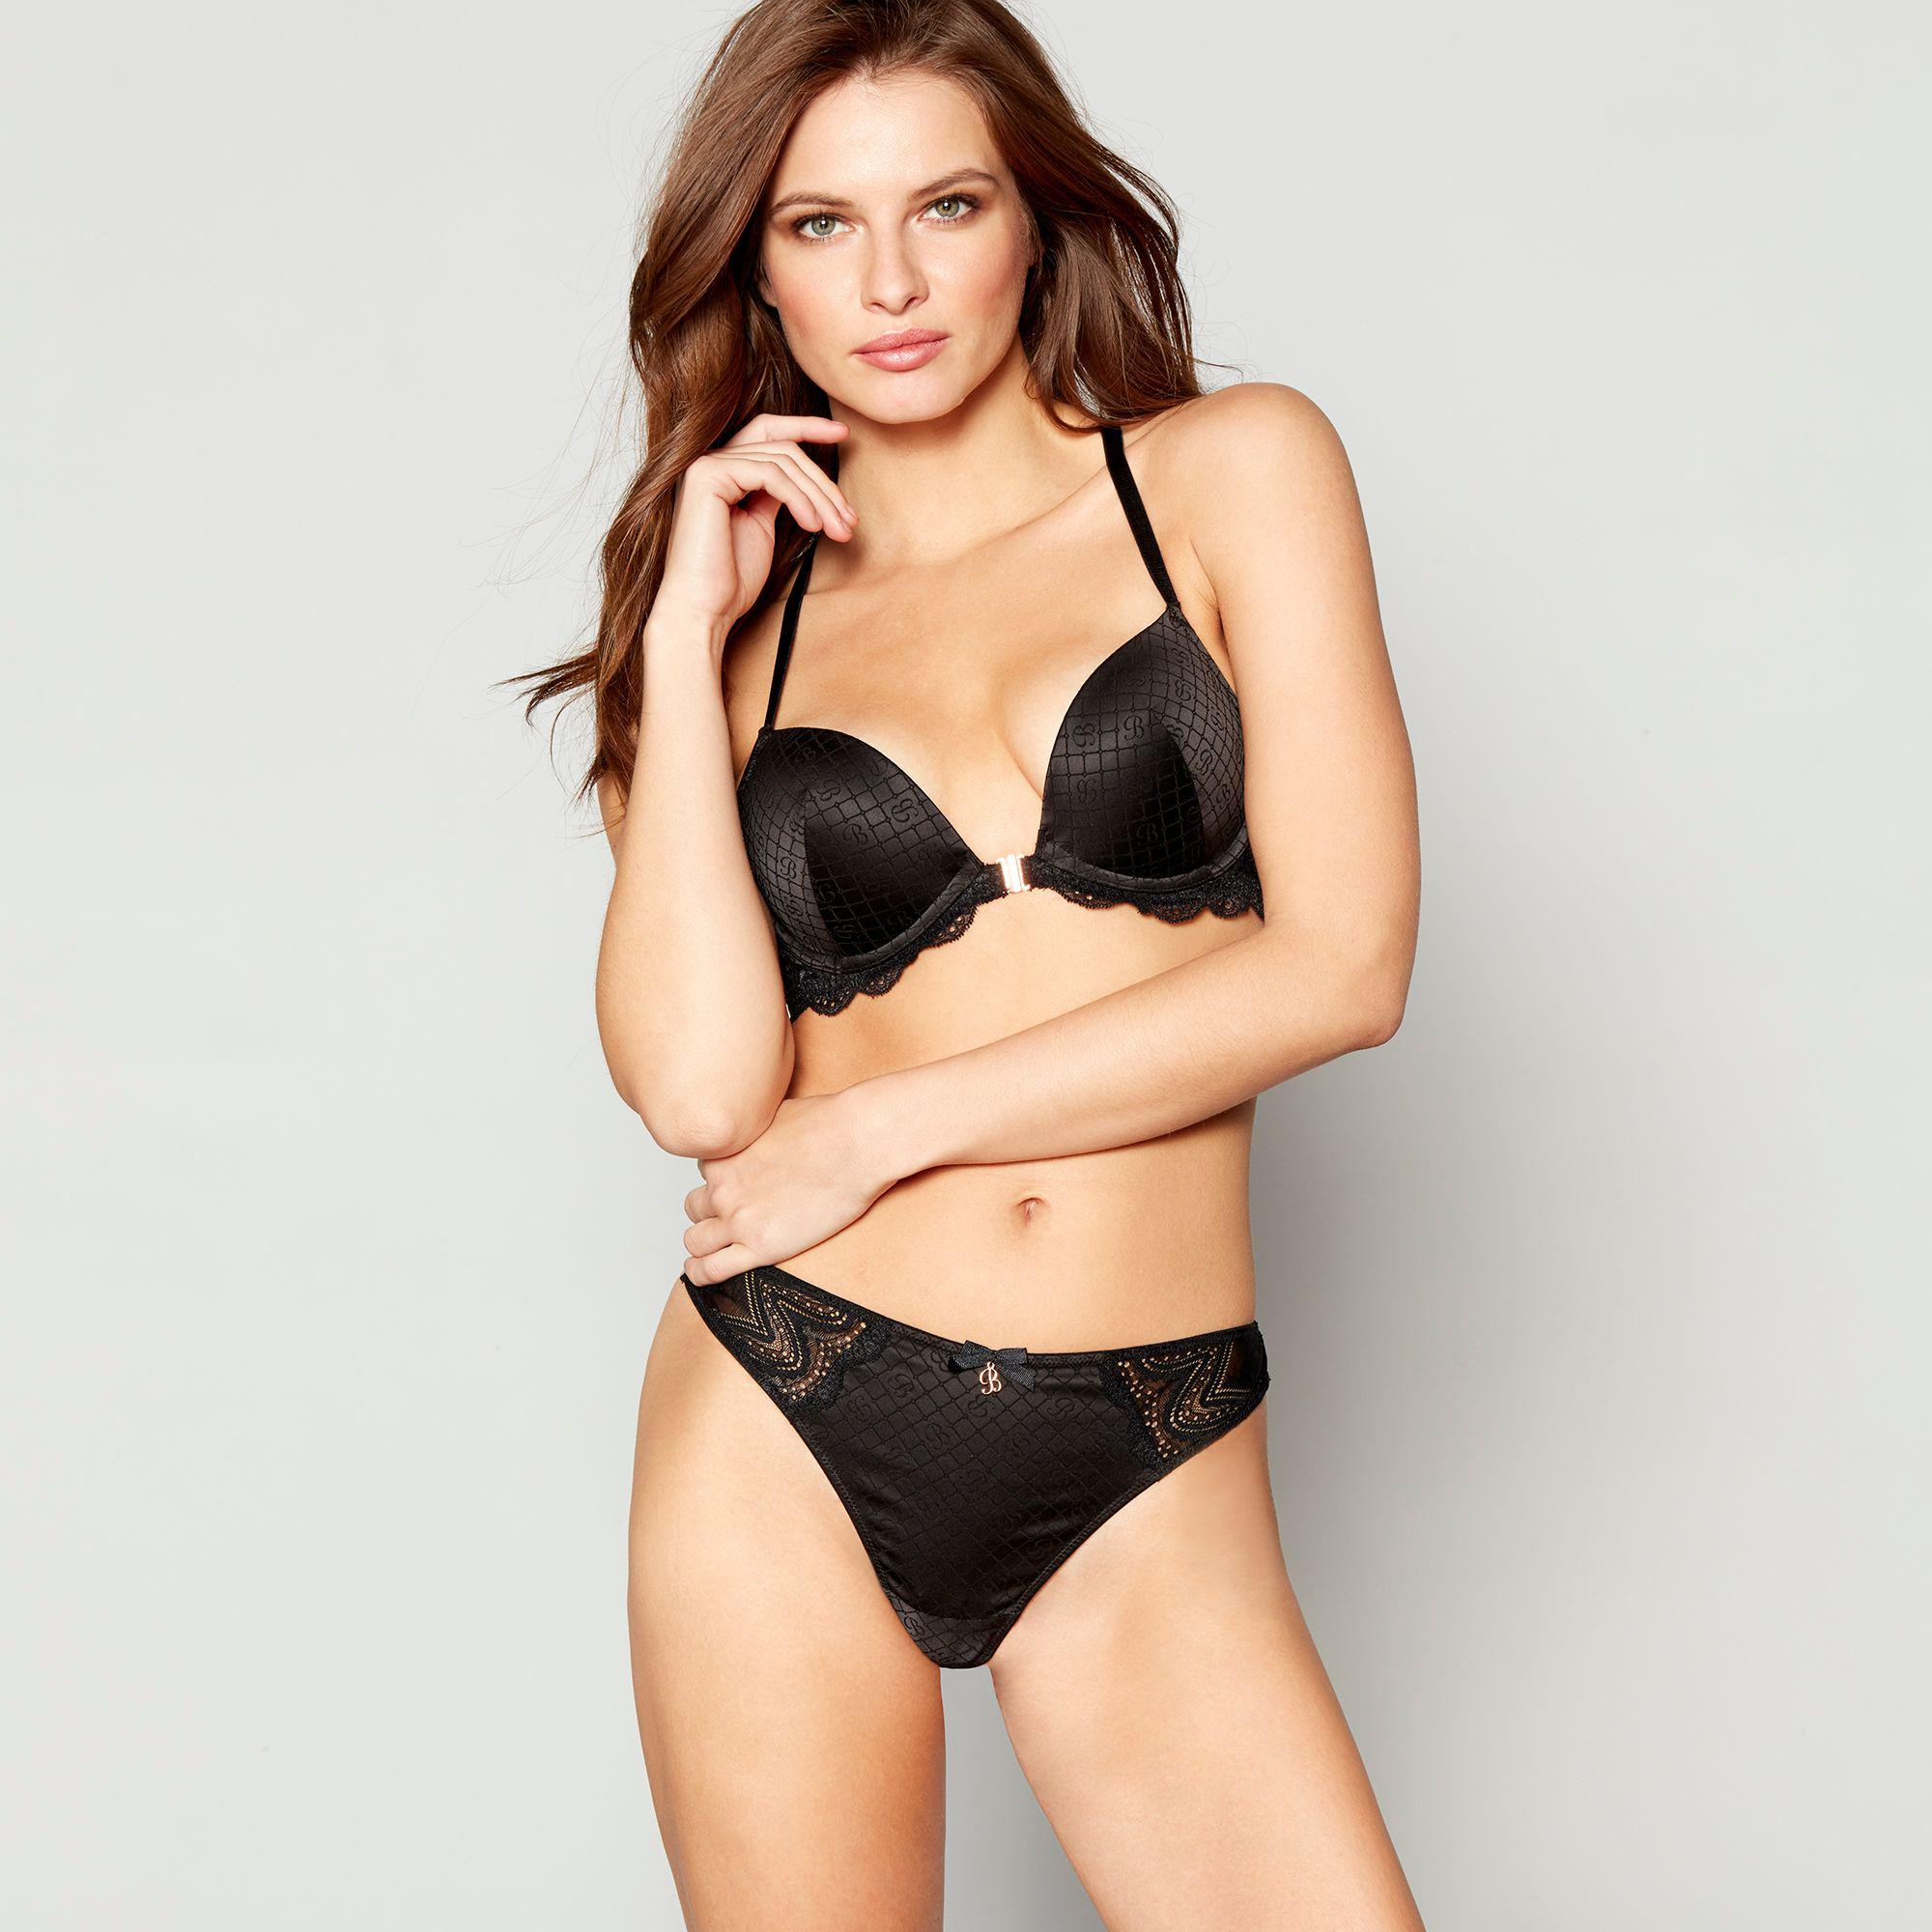 b6130fb648b Ted Baker Black Jacquard Lace Underwired Padded Plunge Bra in Black ...